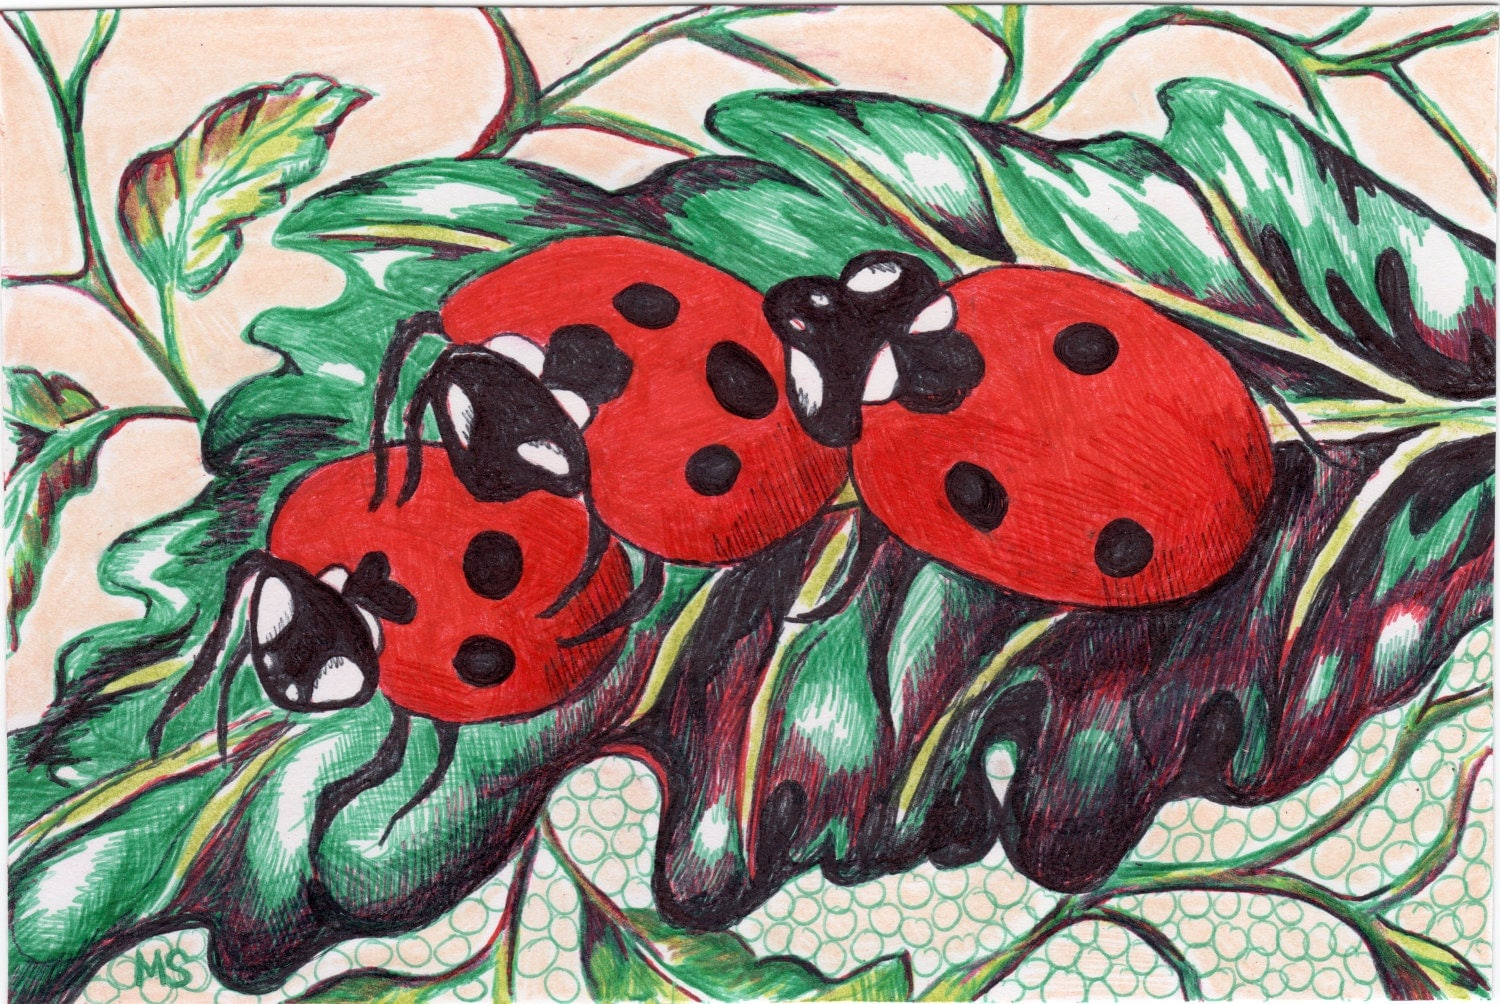 "Ladybug Drawing - Ladybug Art - Nature Wall Decor - Color Pencil, Pen and Ink Drawing - Lady Bugs Doing It - 4x6"" Original Drawing - Michelebuttons"